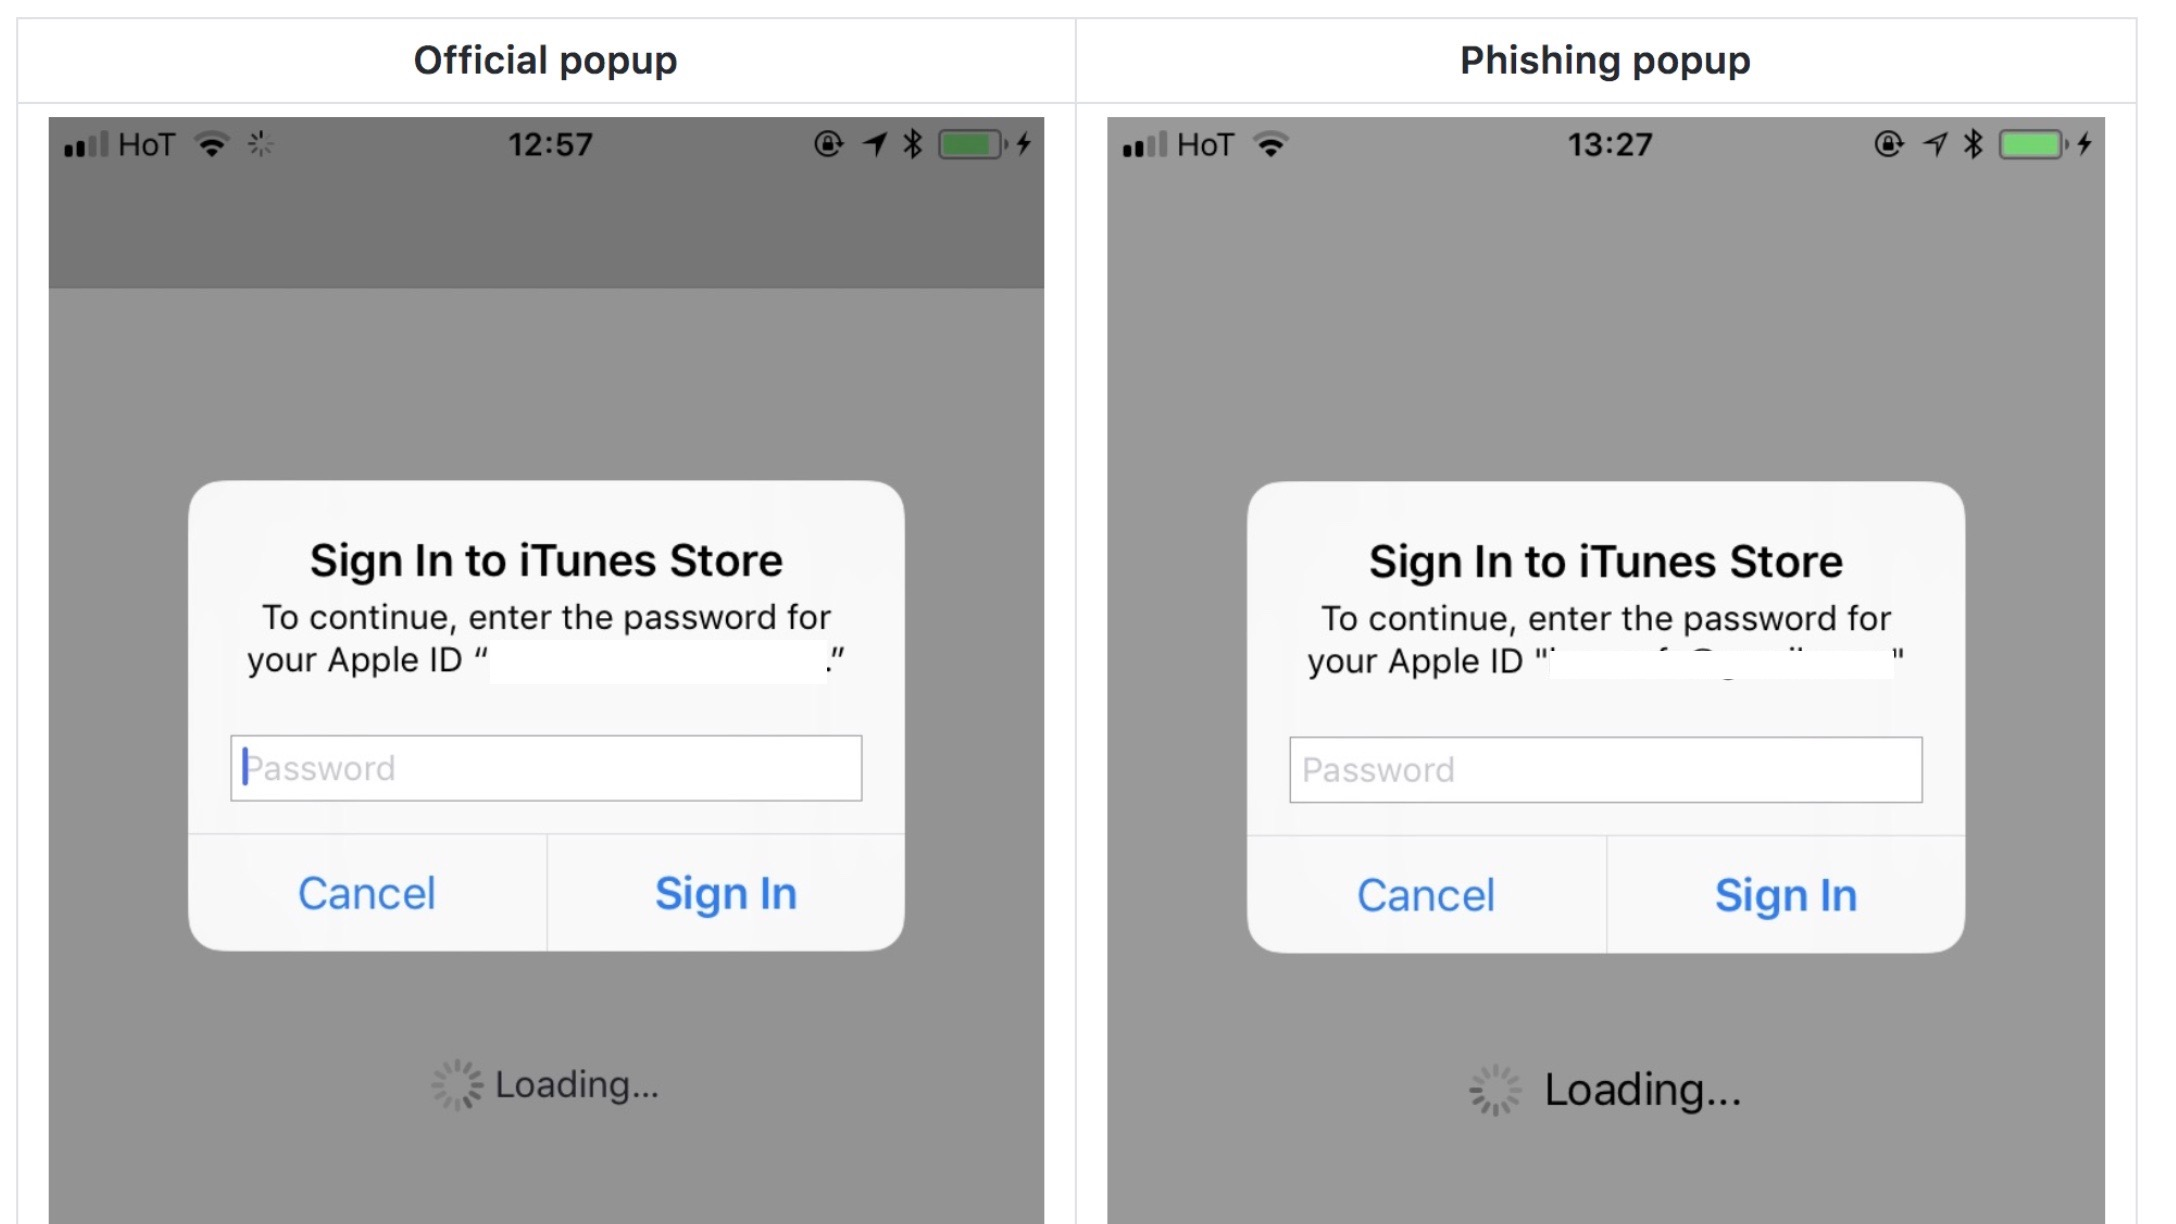 How to cancel apple itunes account